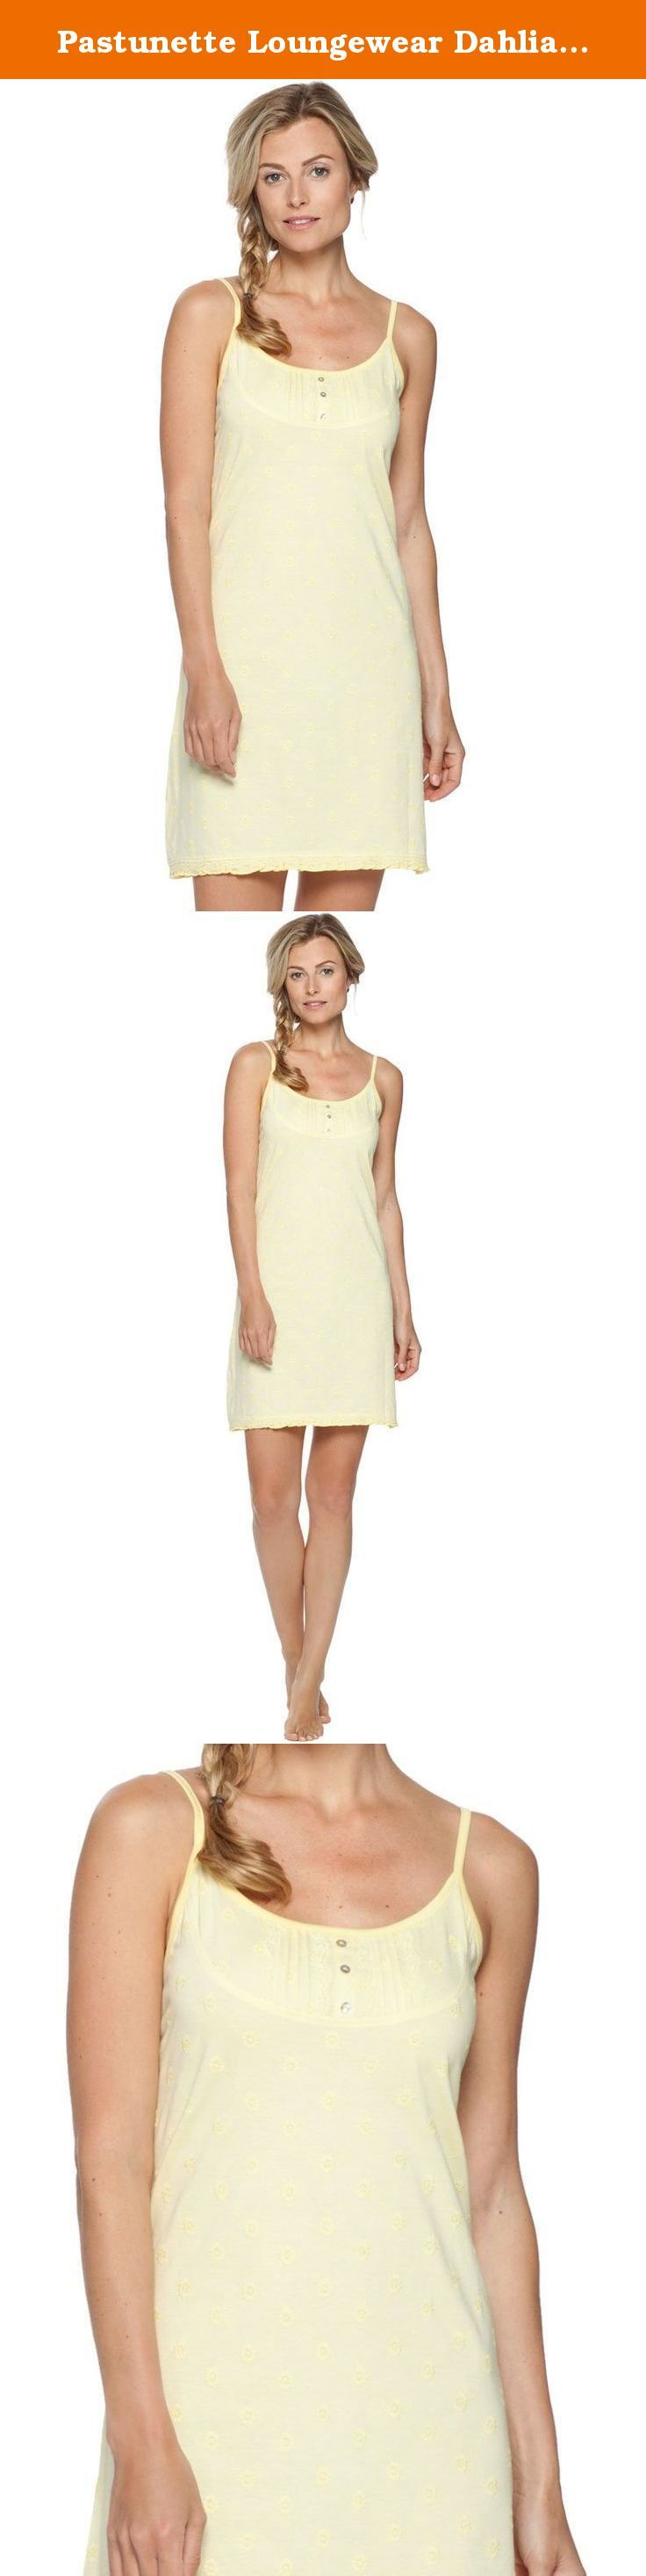 Pastunette Loungewear Dahlia Light Yellow Cotton Spaghetti Nightdress 90cm 1051-356-0-300 8 US/10 UK. Gorgeous and feminine cotton spaghetti strap nightdress in lovely yellow shade featuring subtle floral print. 90cm in length. Cute button detailing on neckline. Elegant lace on bottom edging.